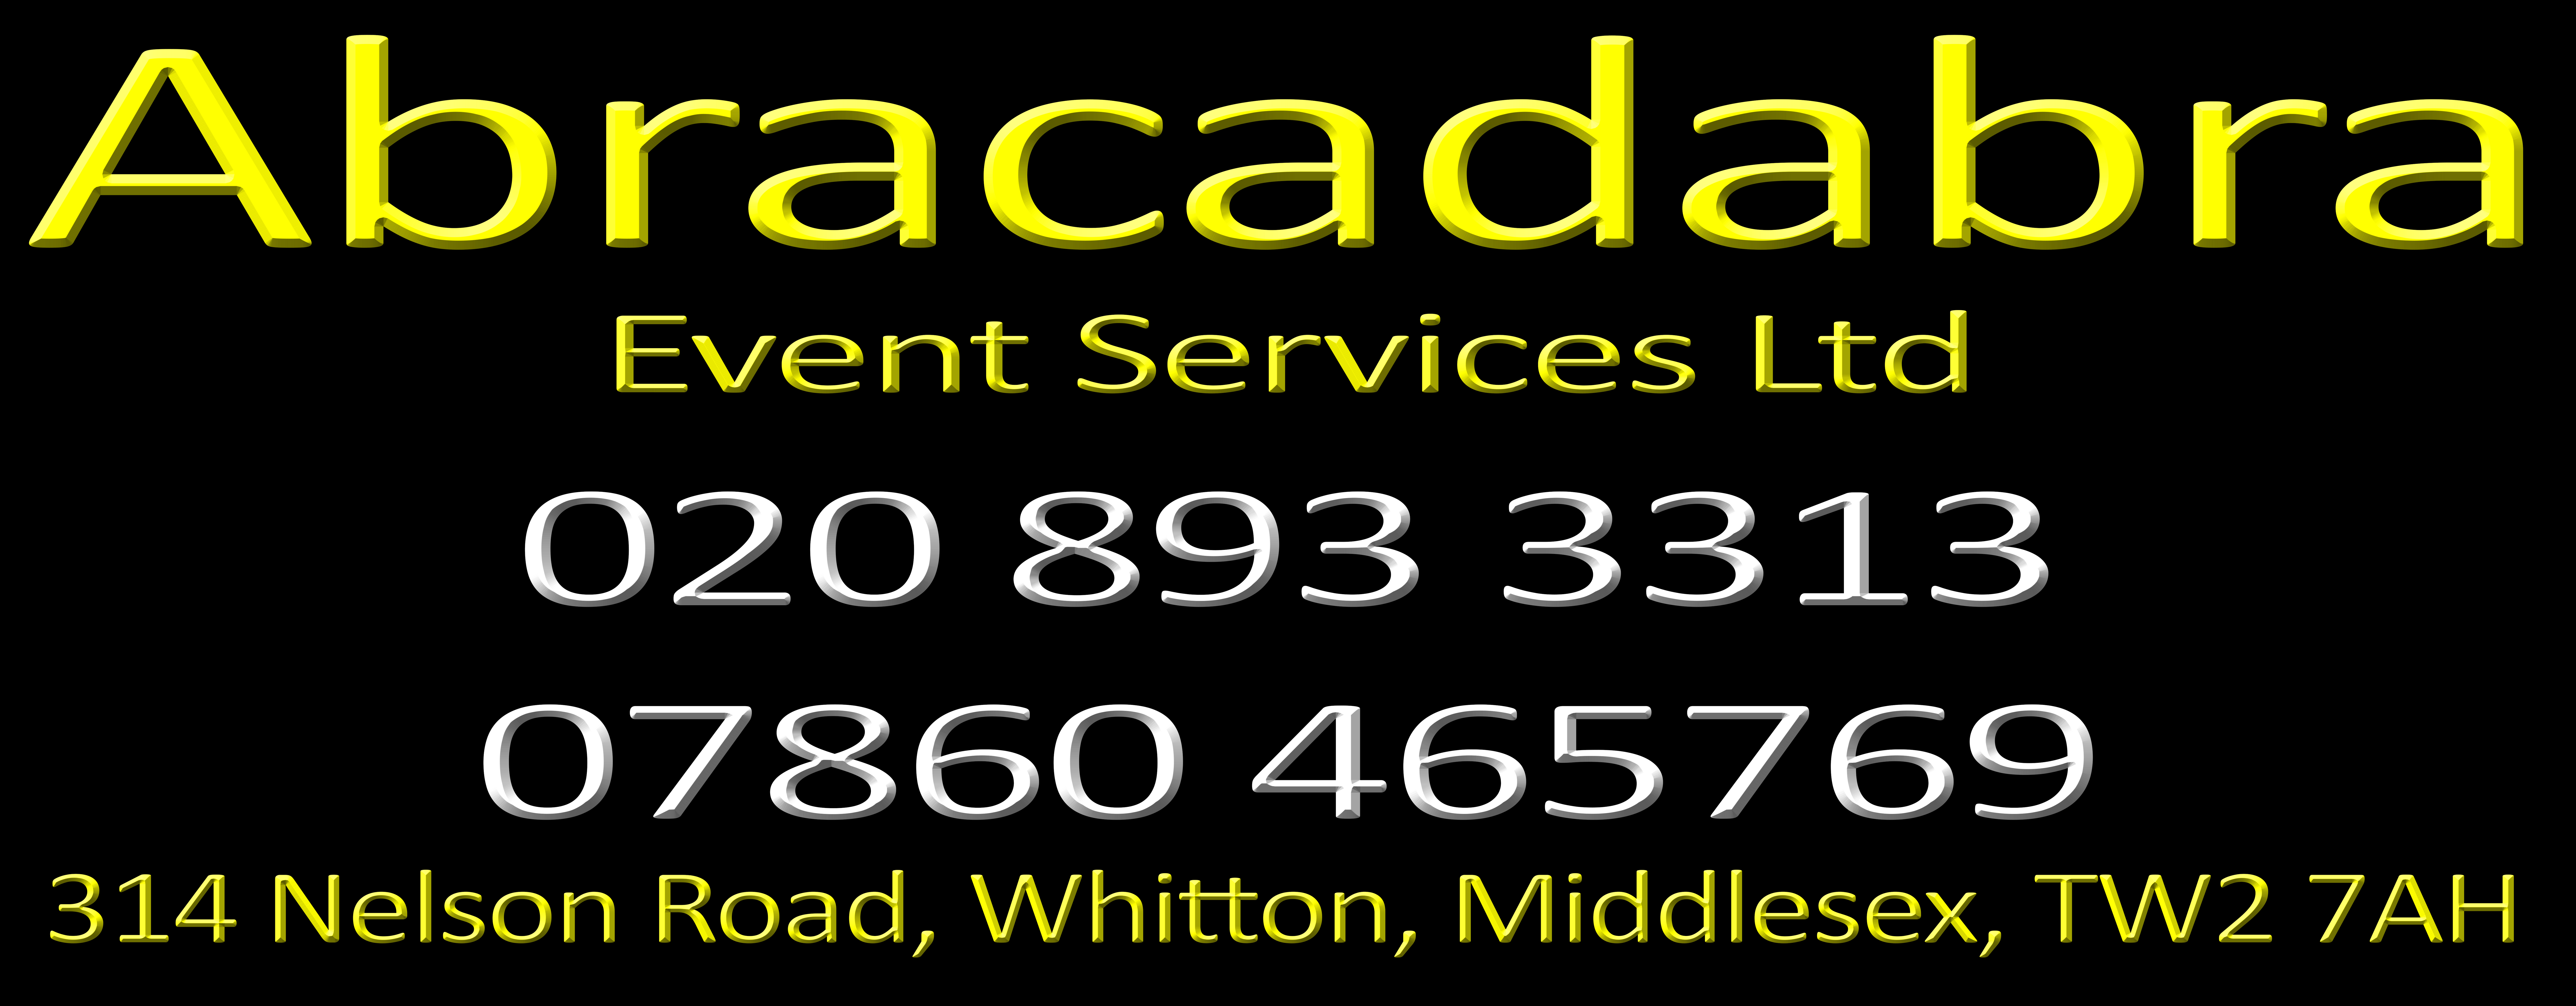 Abracadabra Event Services Ltd